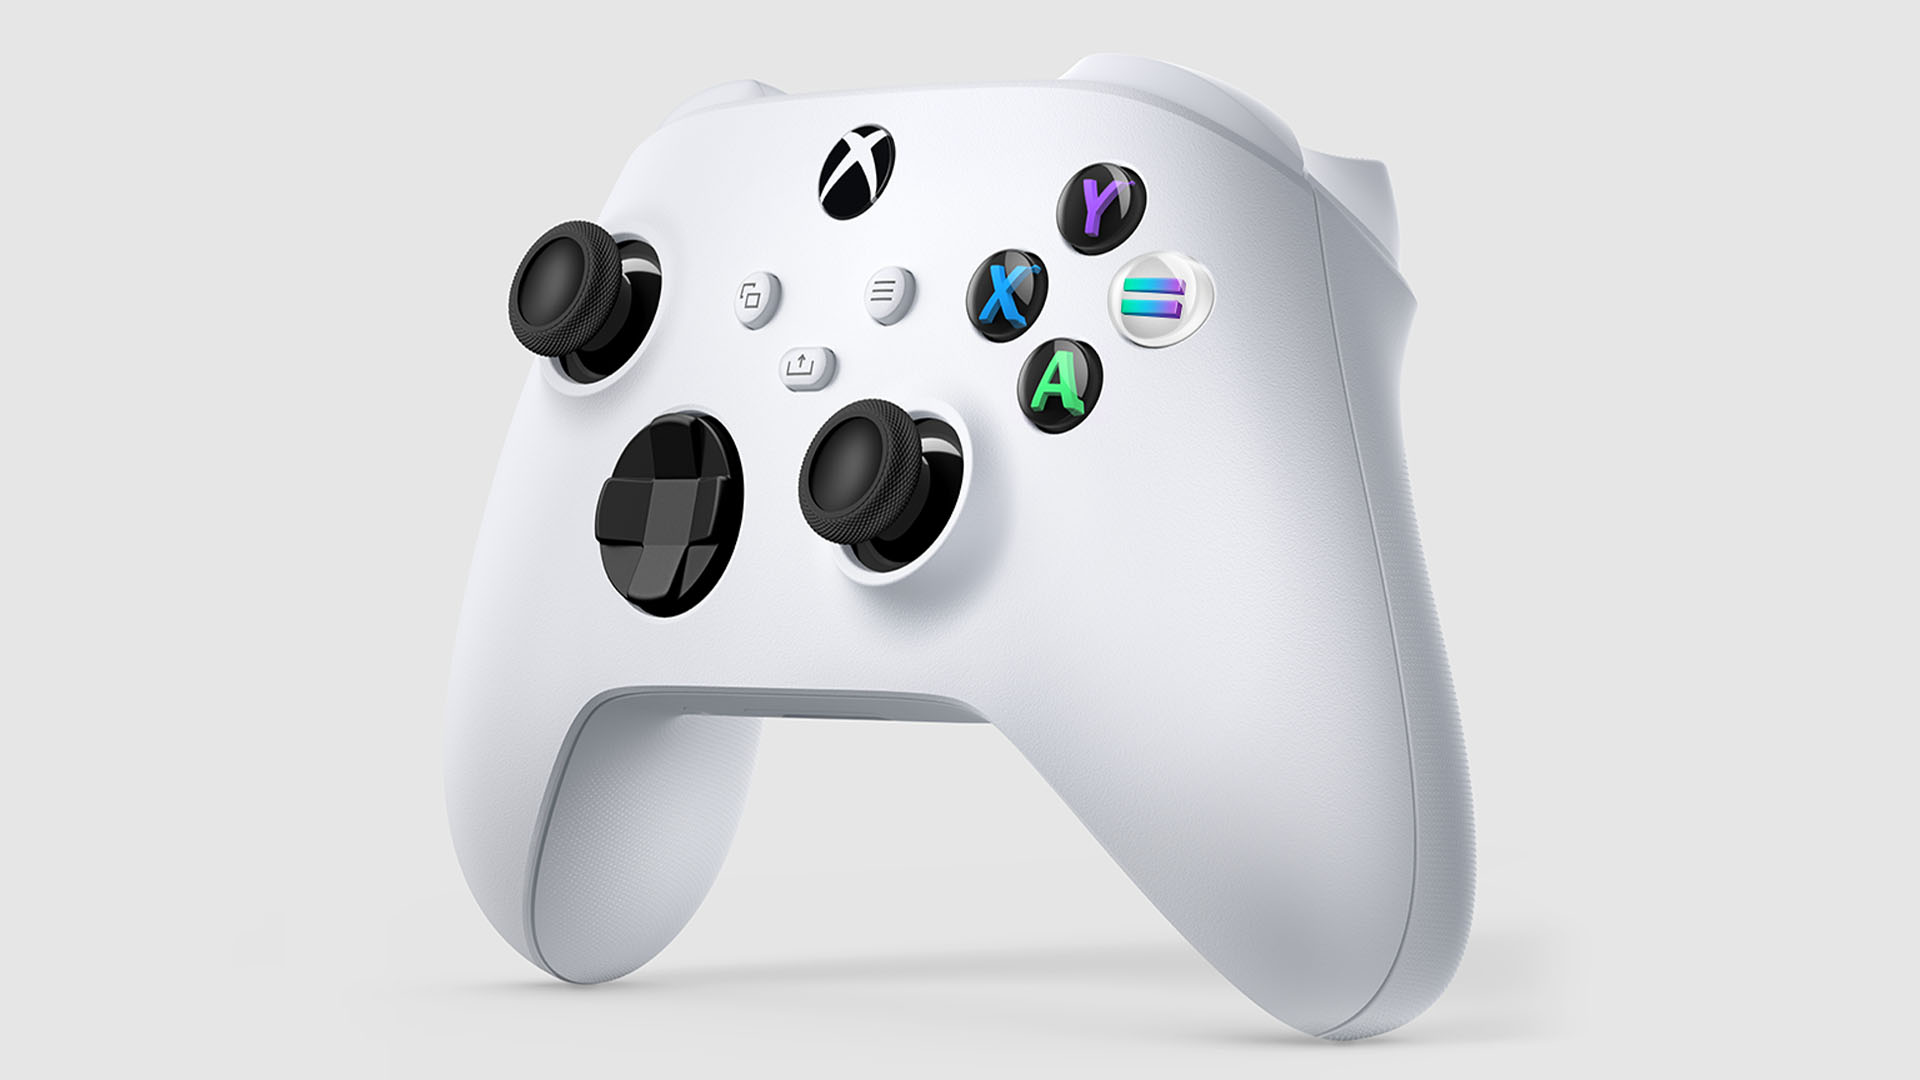 Xbox delivered the controllers to influencers in 23 countries to support women in gaming.